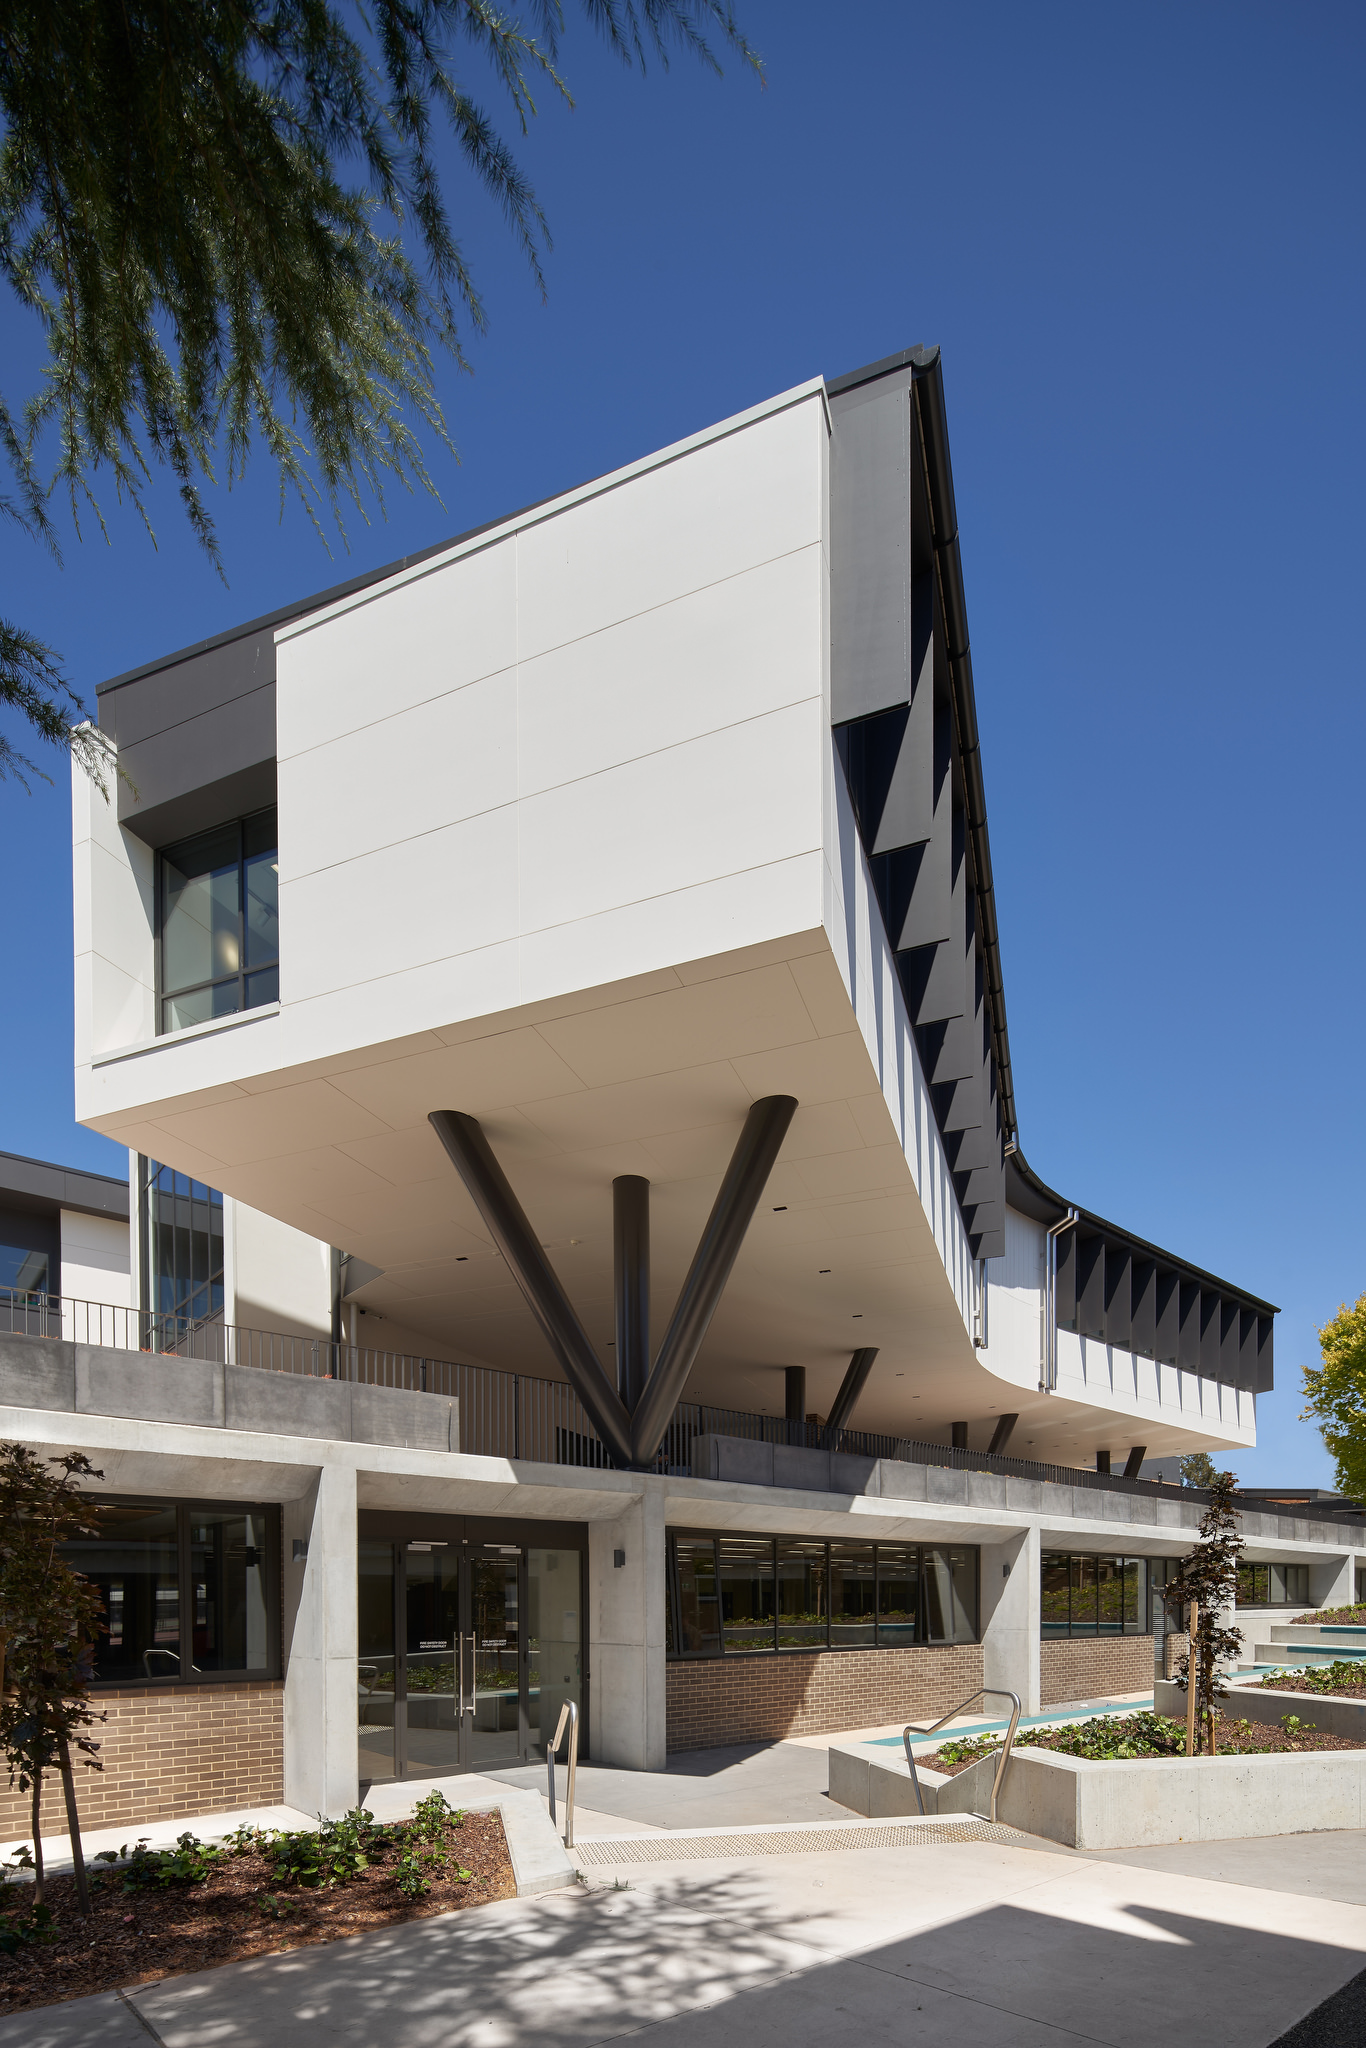 Architecturally designed school building cantilevered on posts